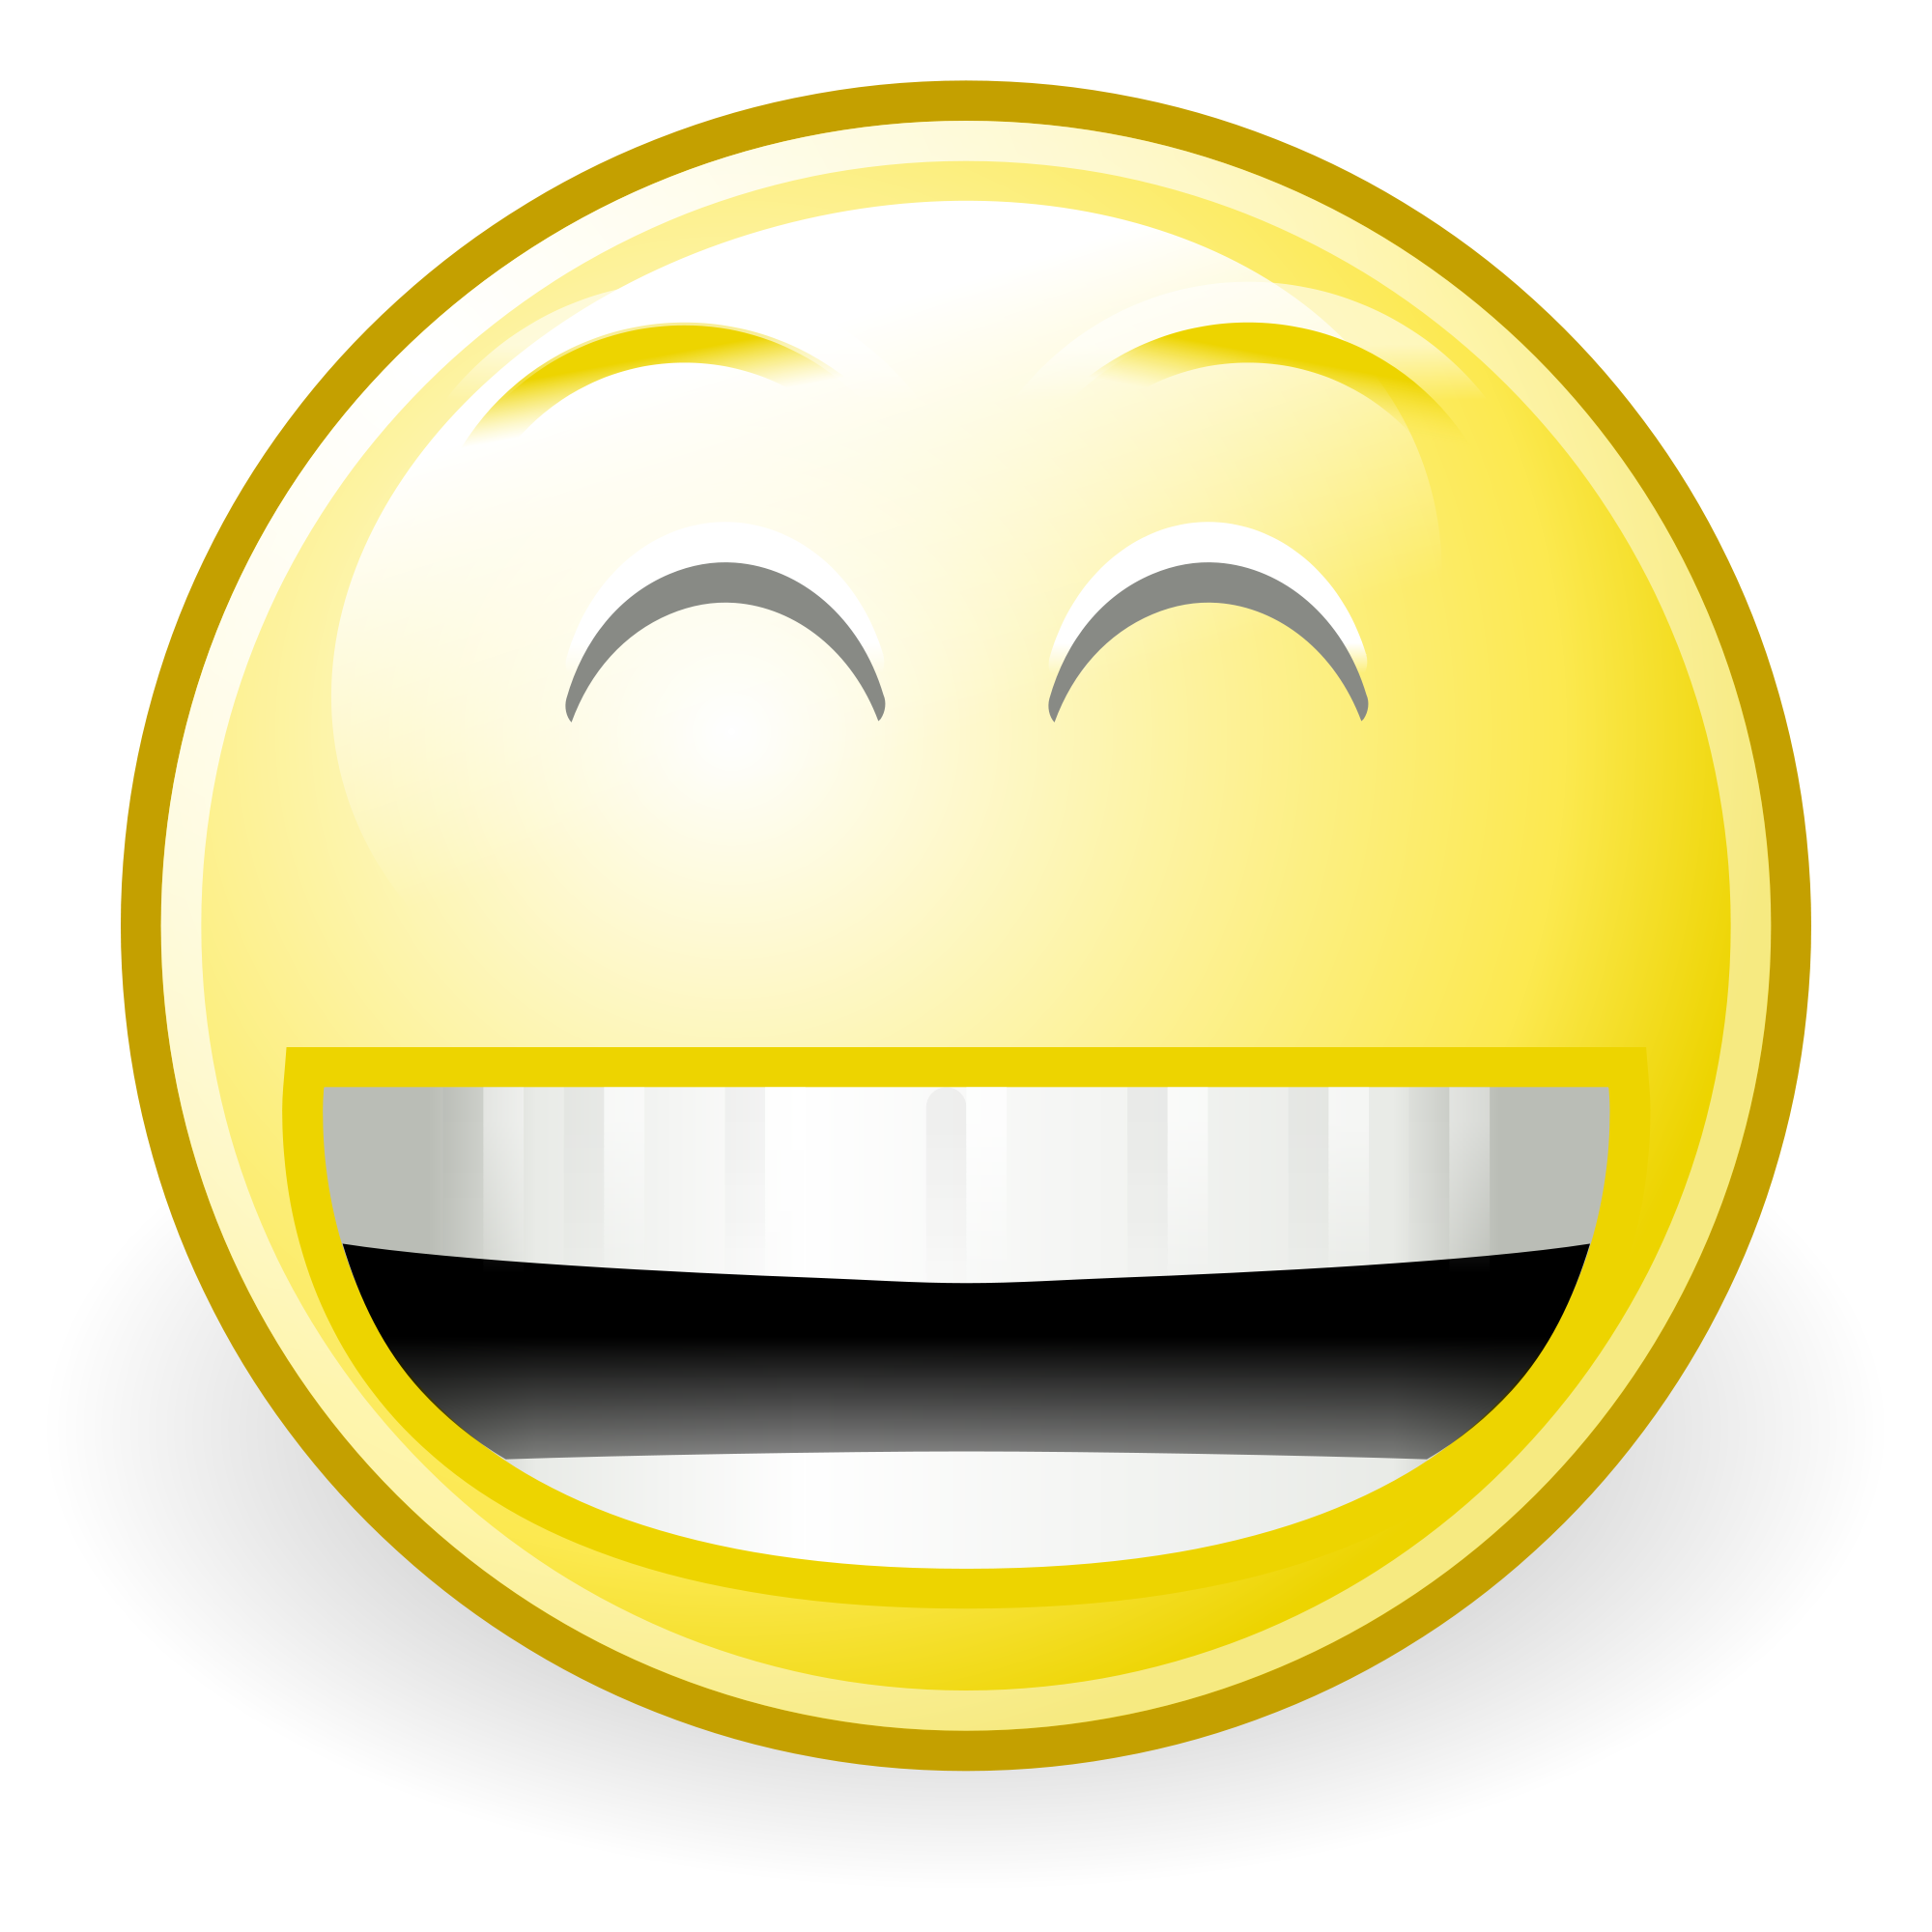 Laughing smiley face shop. Positive clipart animated